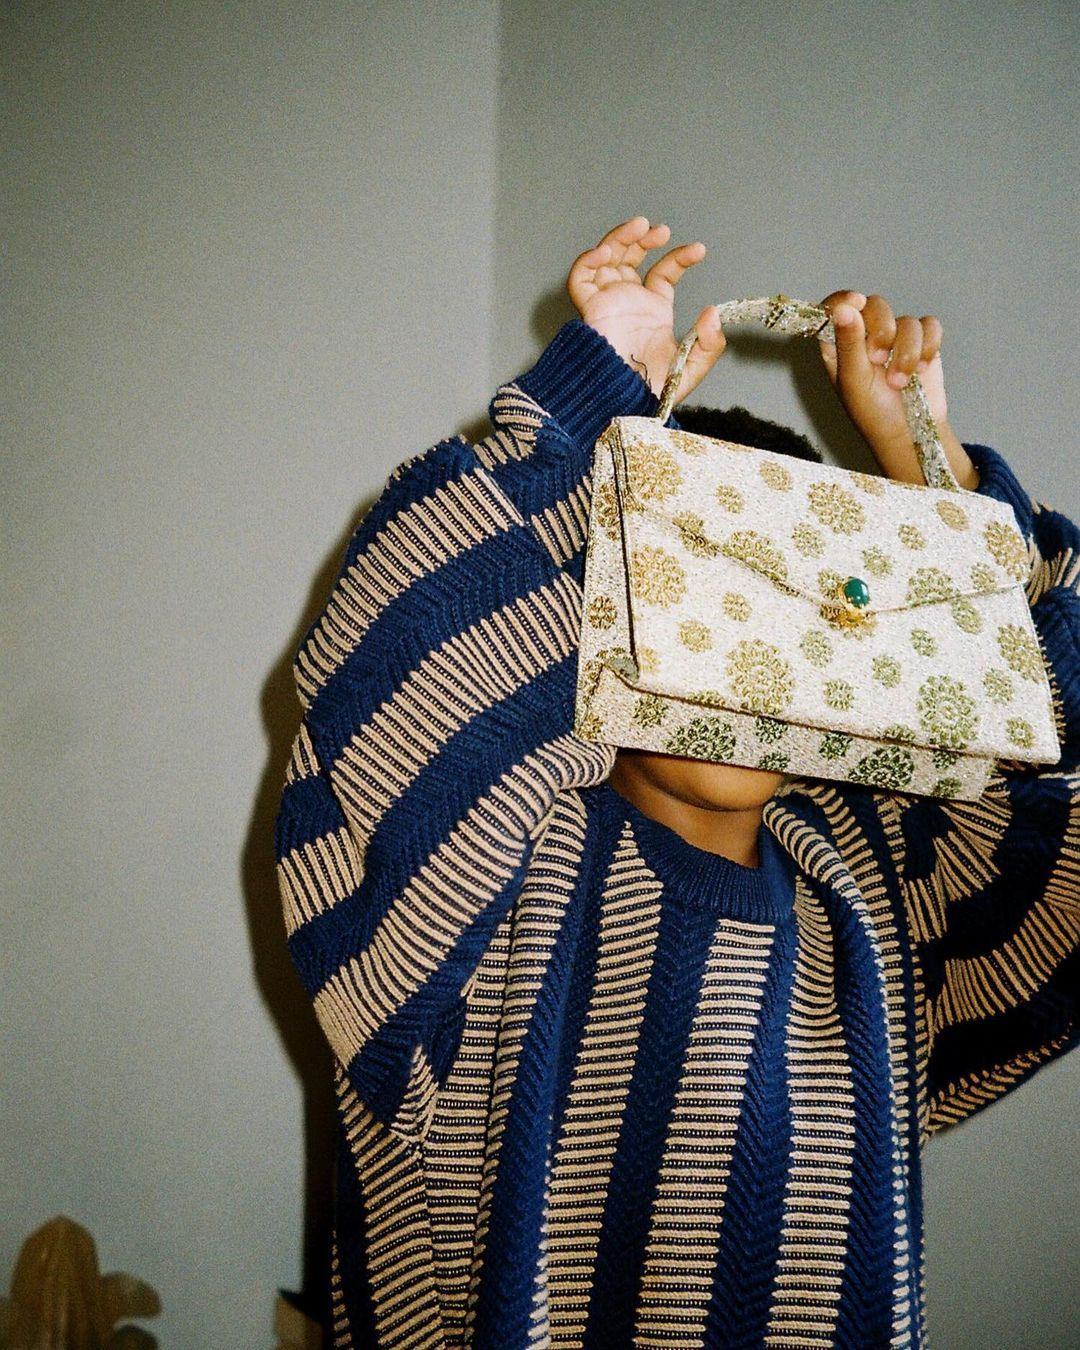 A woman in an oversized blue and yellow sweater holding a patterned gold handbag with a turquoise clasp